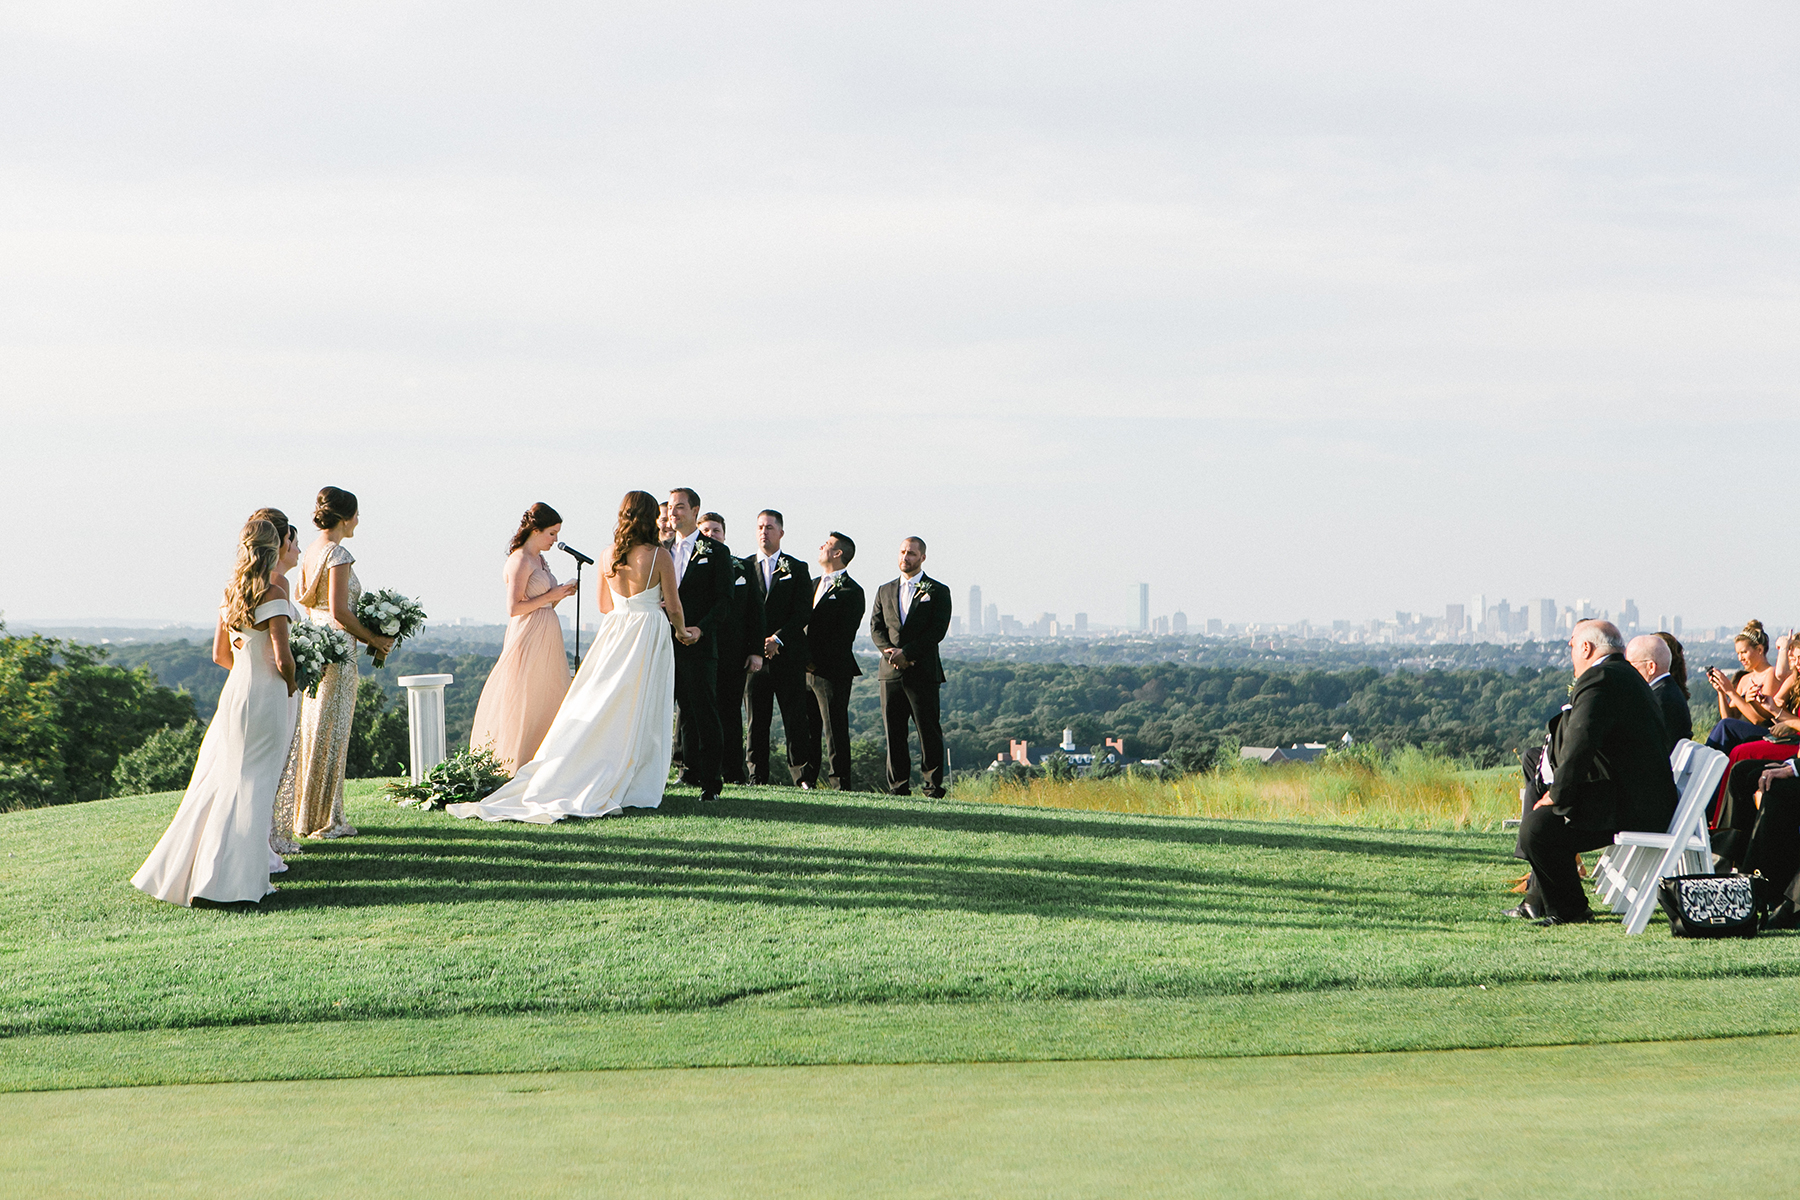 29-quincy-granite-links-wedding-boston.jpg